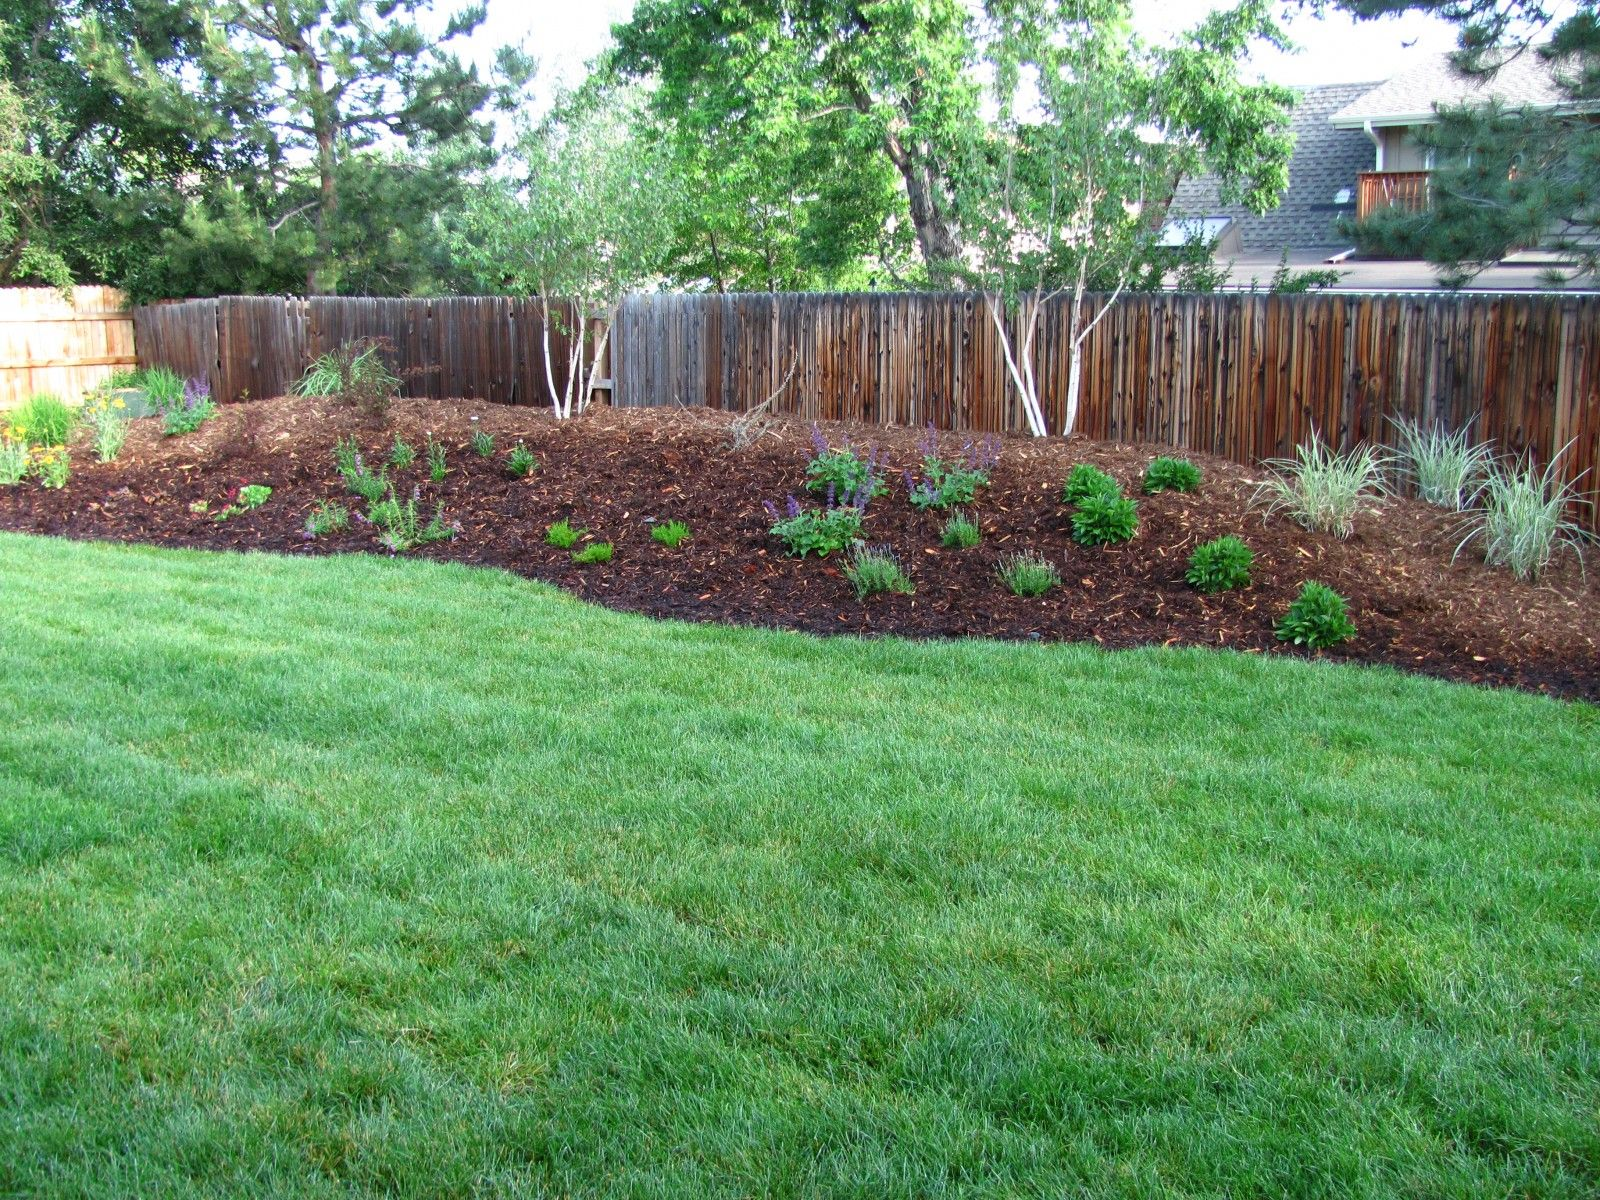 Backyard berms photos google search landscape design Backyard landscape photos ideas